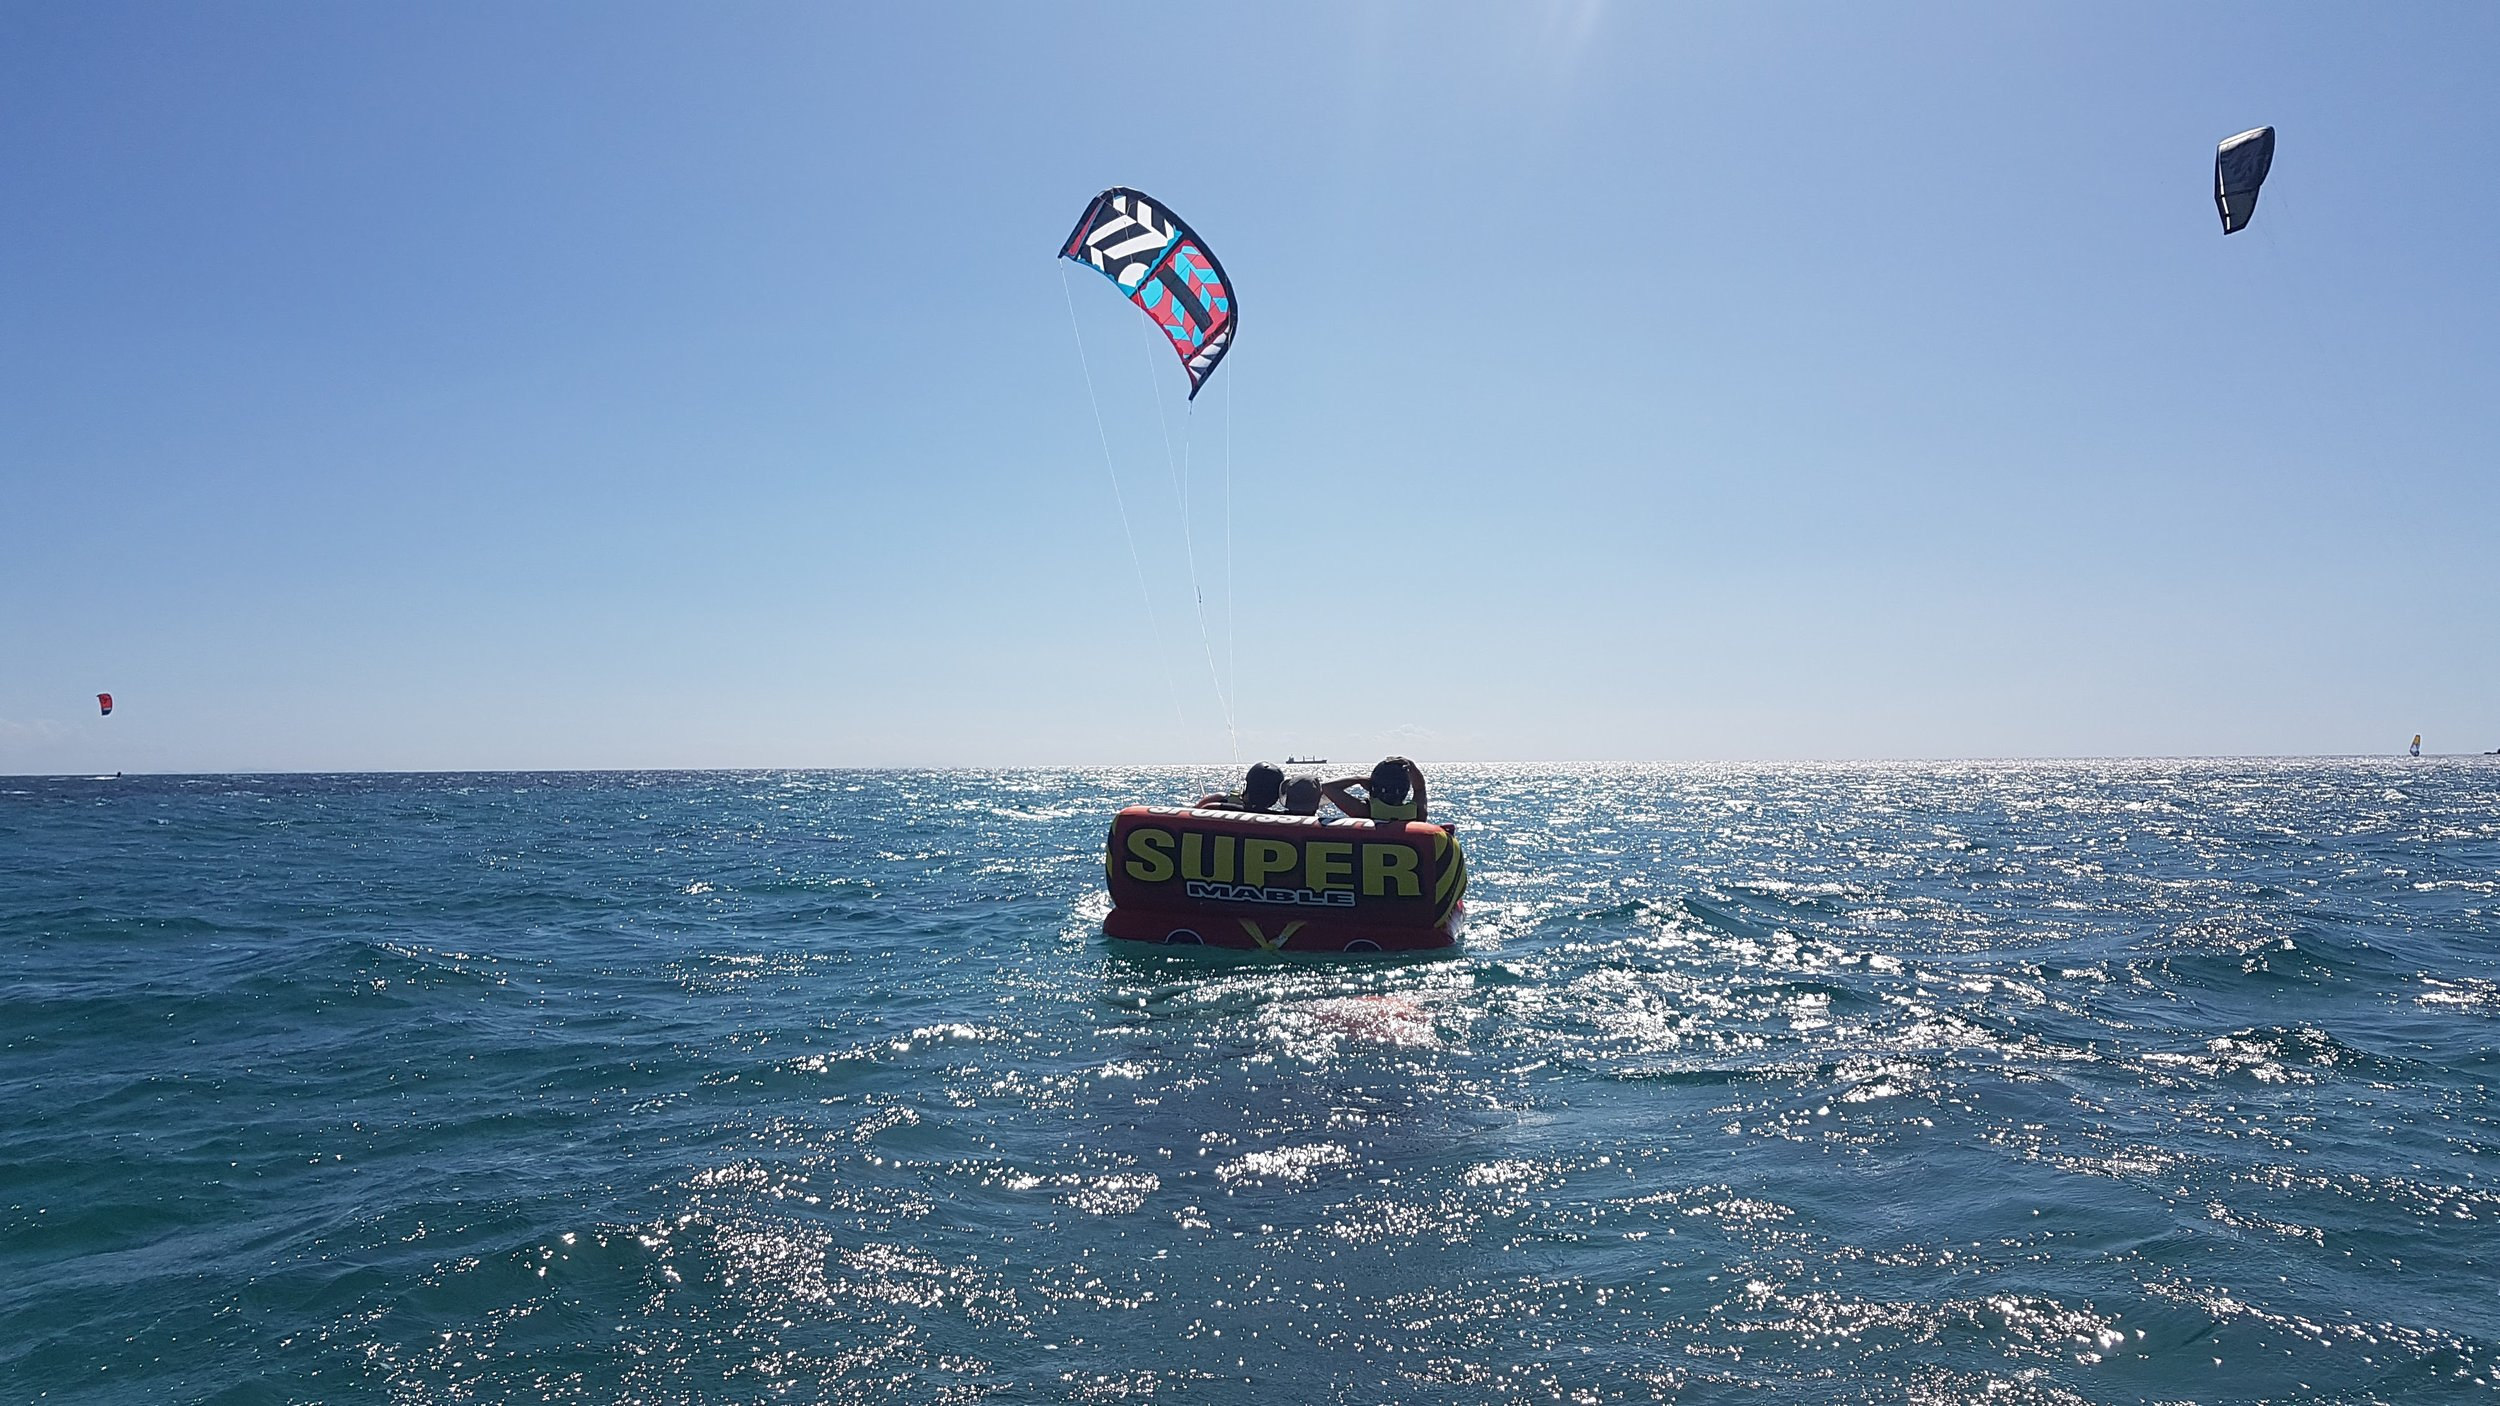 Nev, Coulis (instructor), Zuzana Piloting The Kite From The Inflatable Sofa